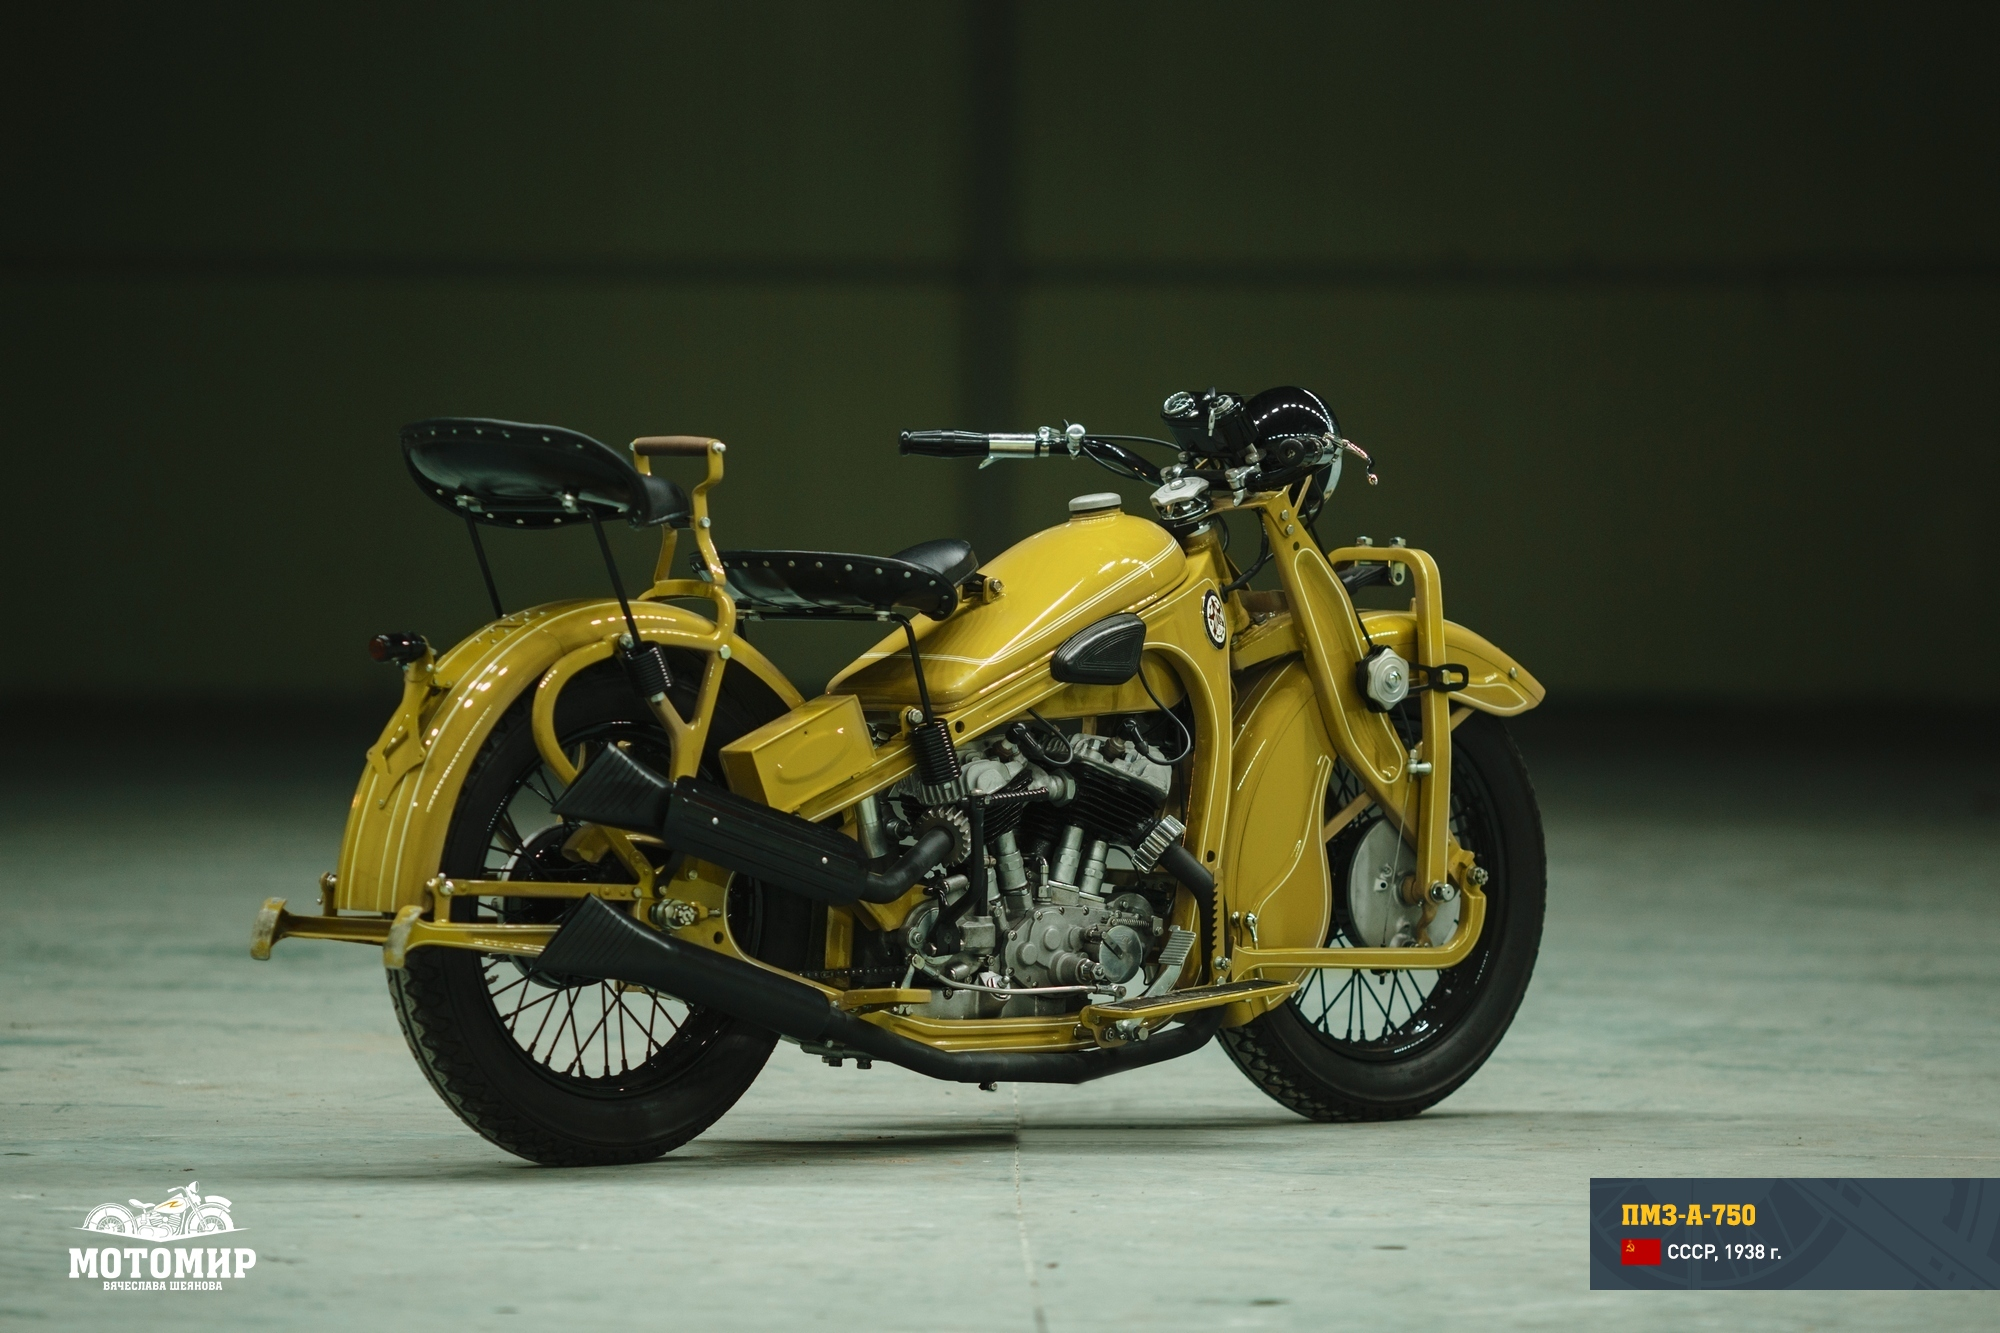 Motorcycle PMZ-A-750: technical specifications 72